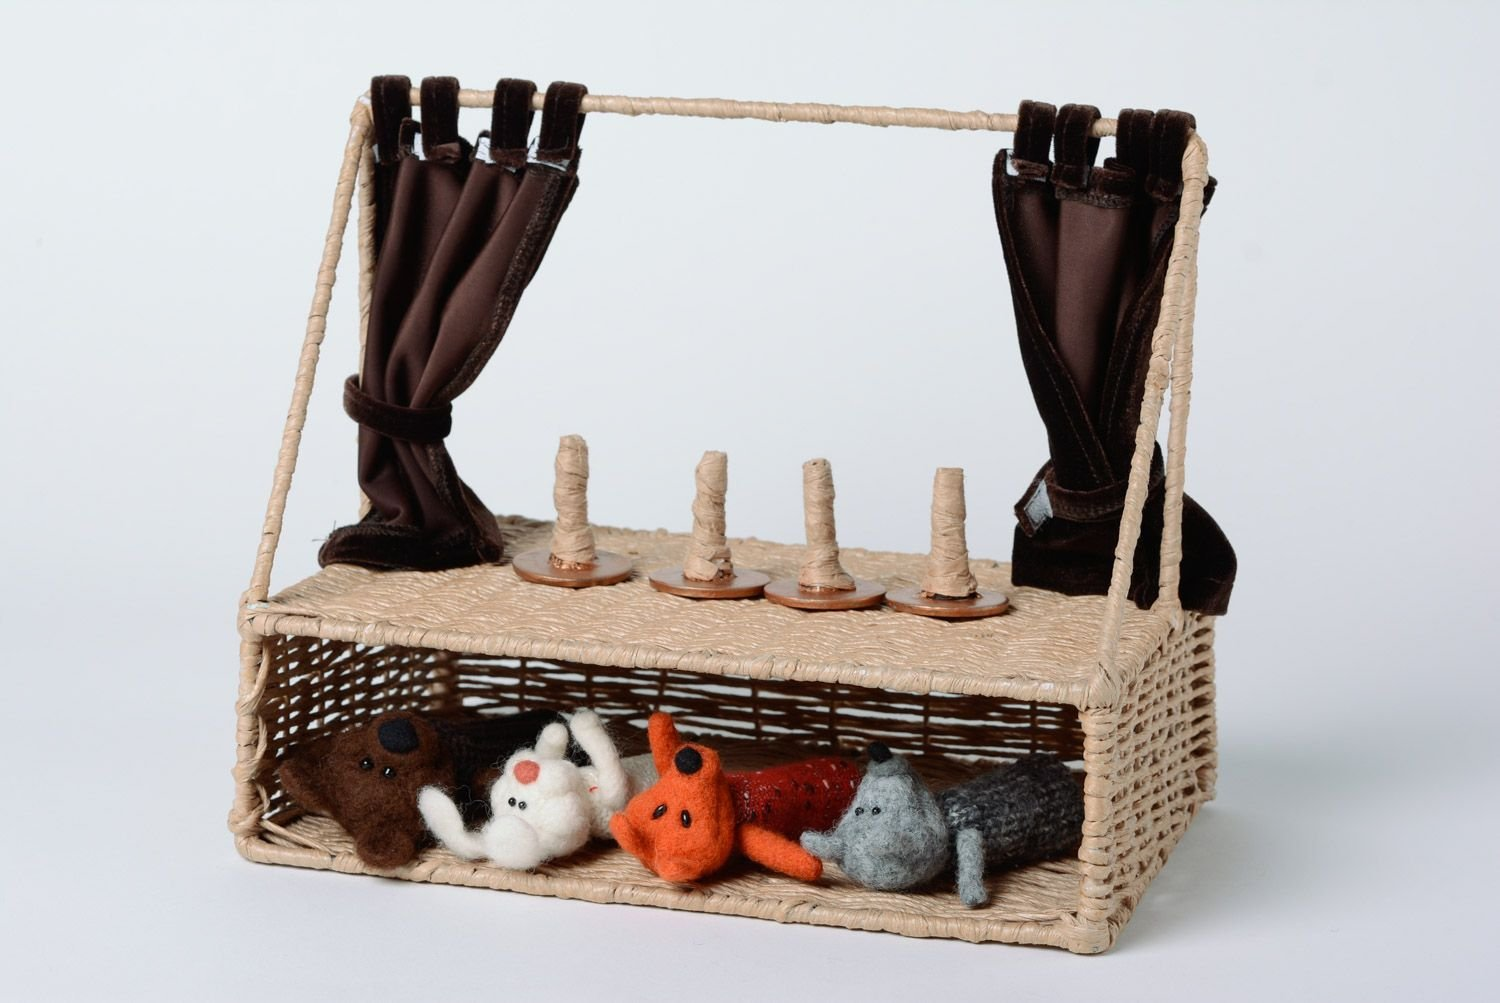 Set Of Handmade Scenery For Puppet Theater 1 Folding Screen And 4 Holders by MadeHeart | Buy handmade goods (Image #4)